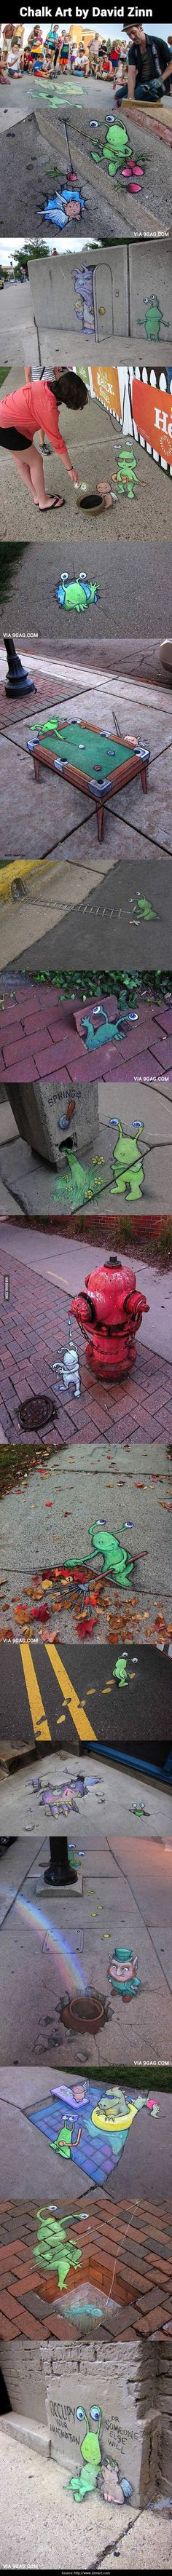 street art that is freaking awesome!